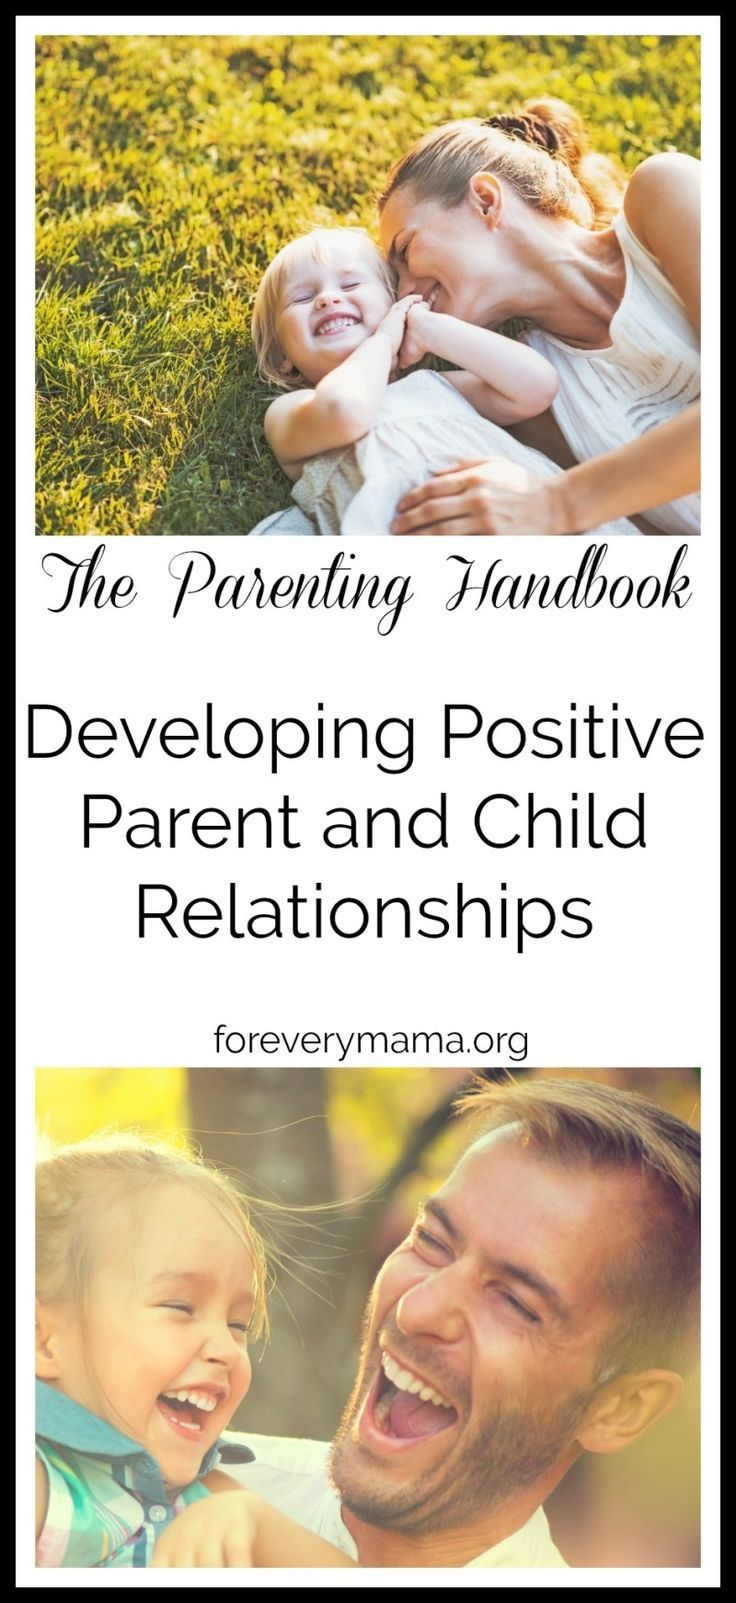 The Parenting Handbook: Developing Positive Parent and Child Relationships.